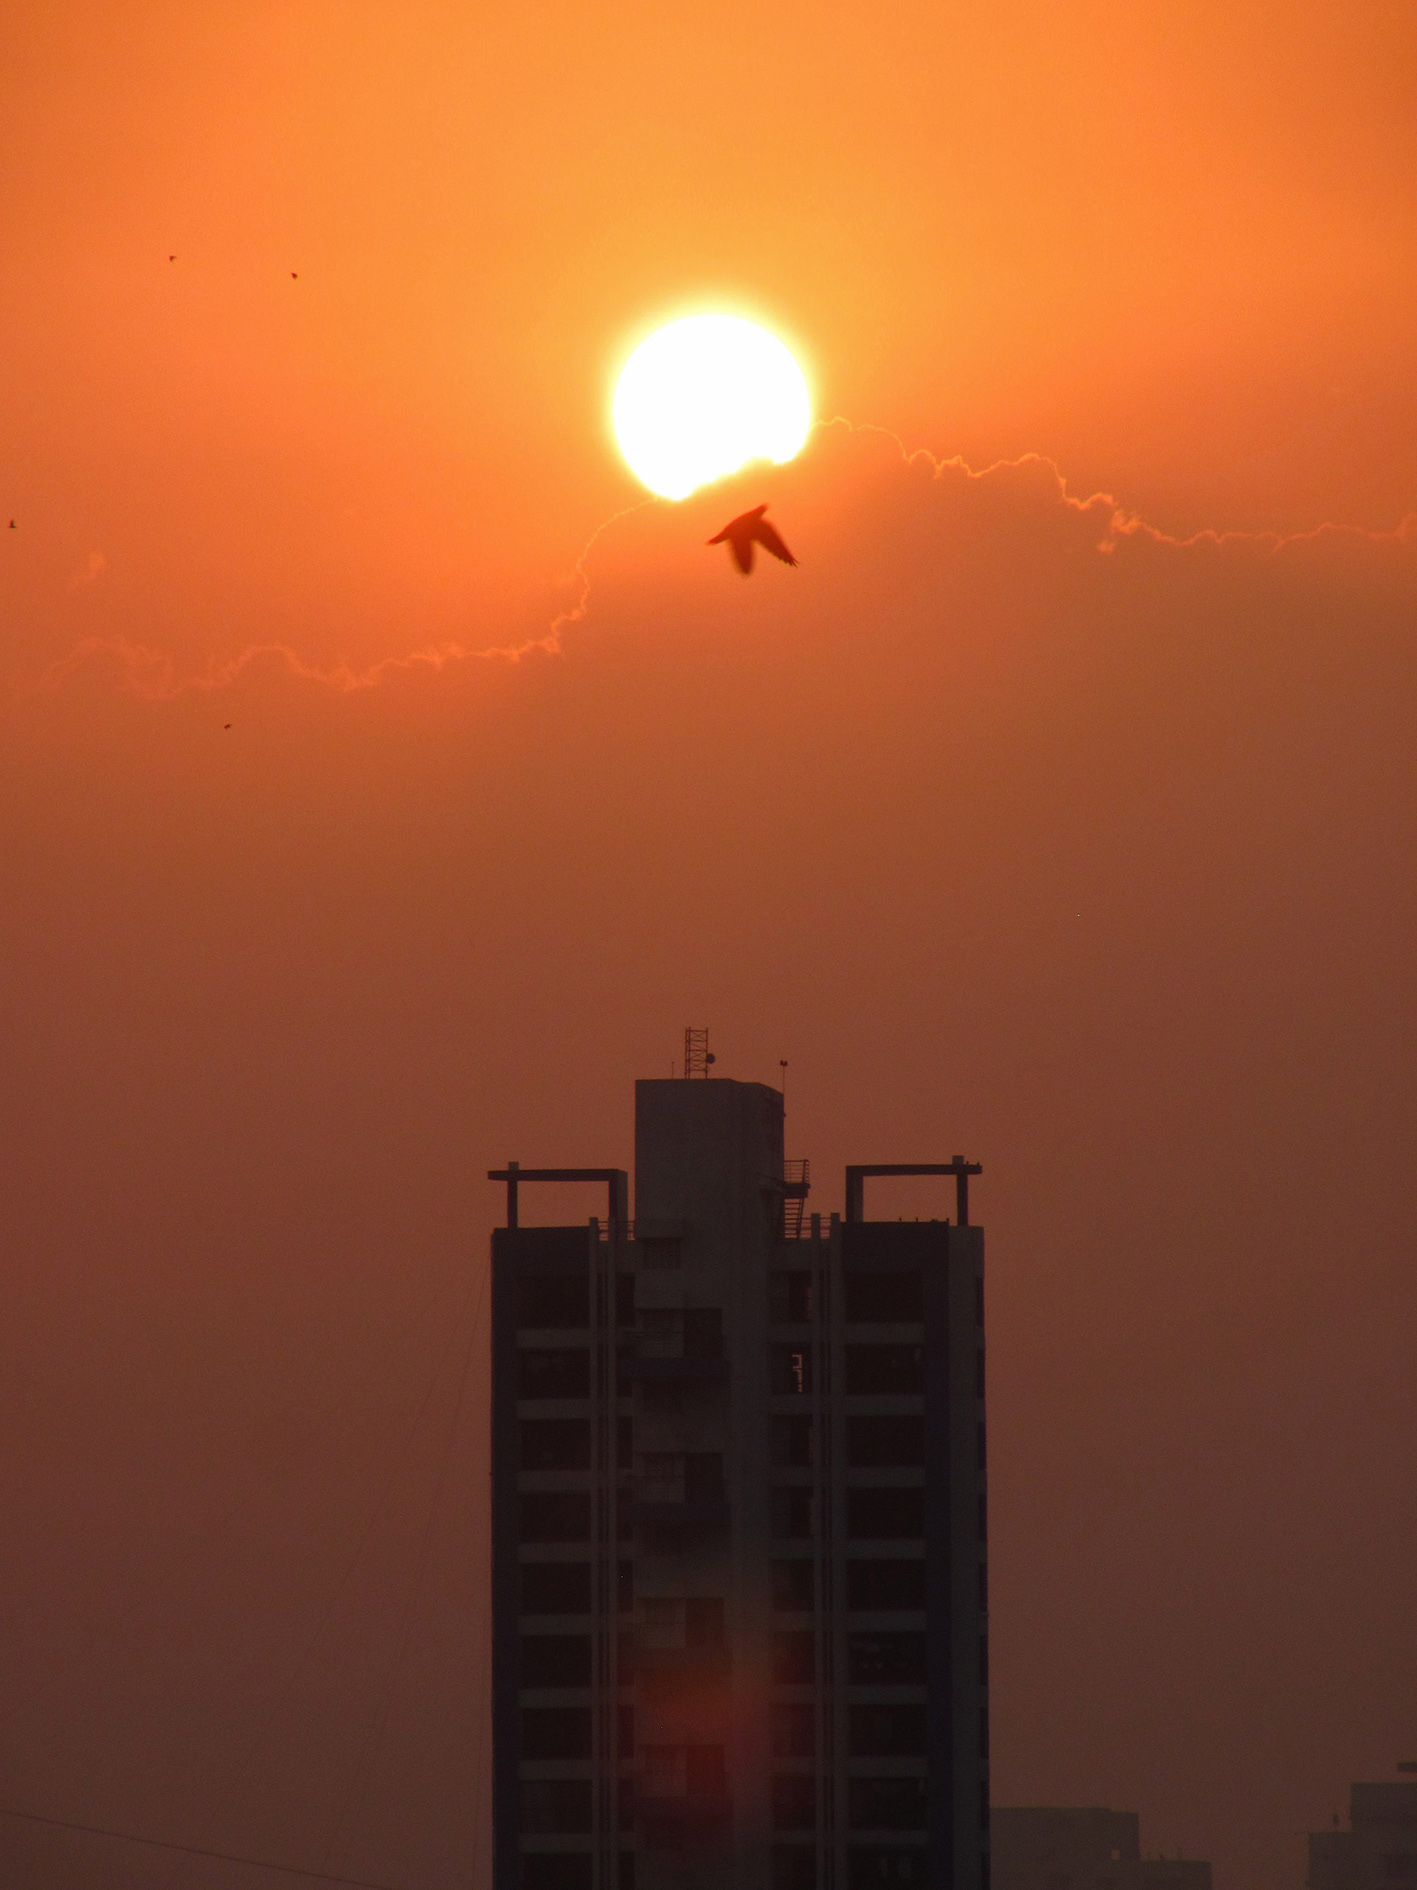 The sun emerges from the clouds and the bird begins its day, only to be seen atop a high-rise building from my vantage point